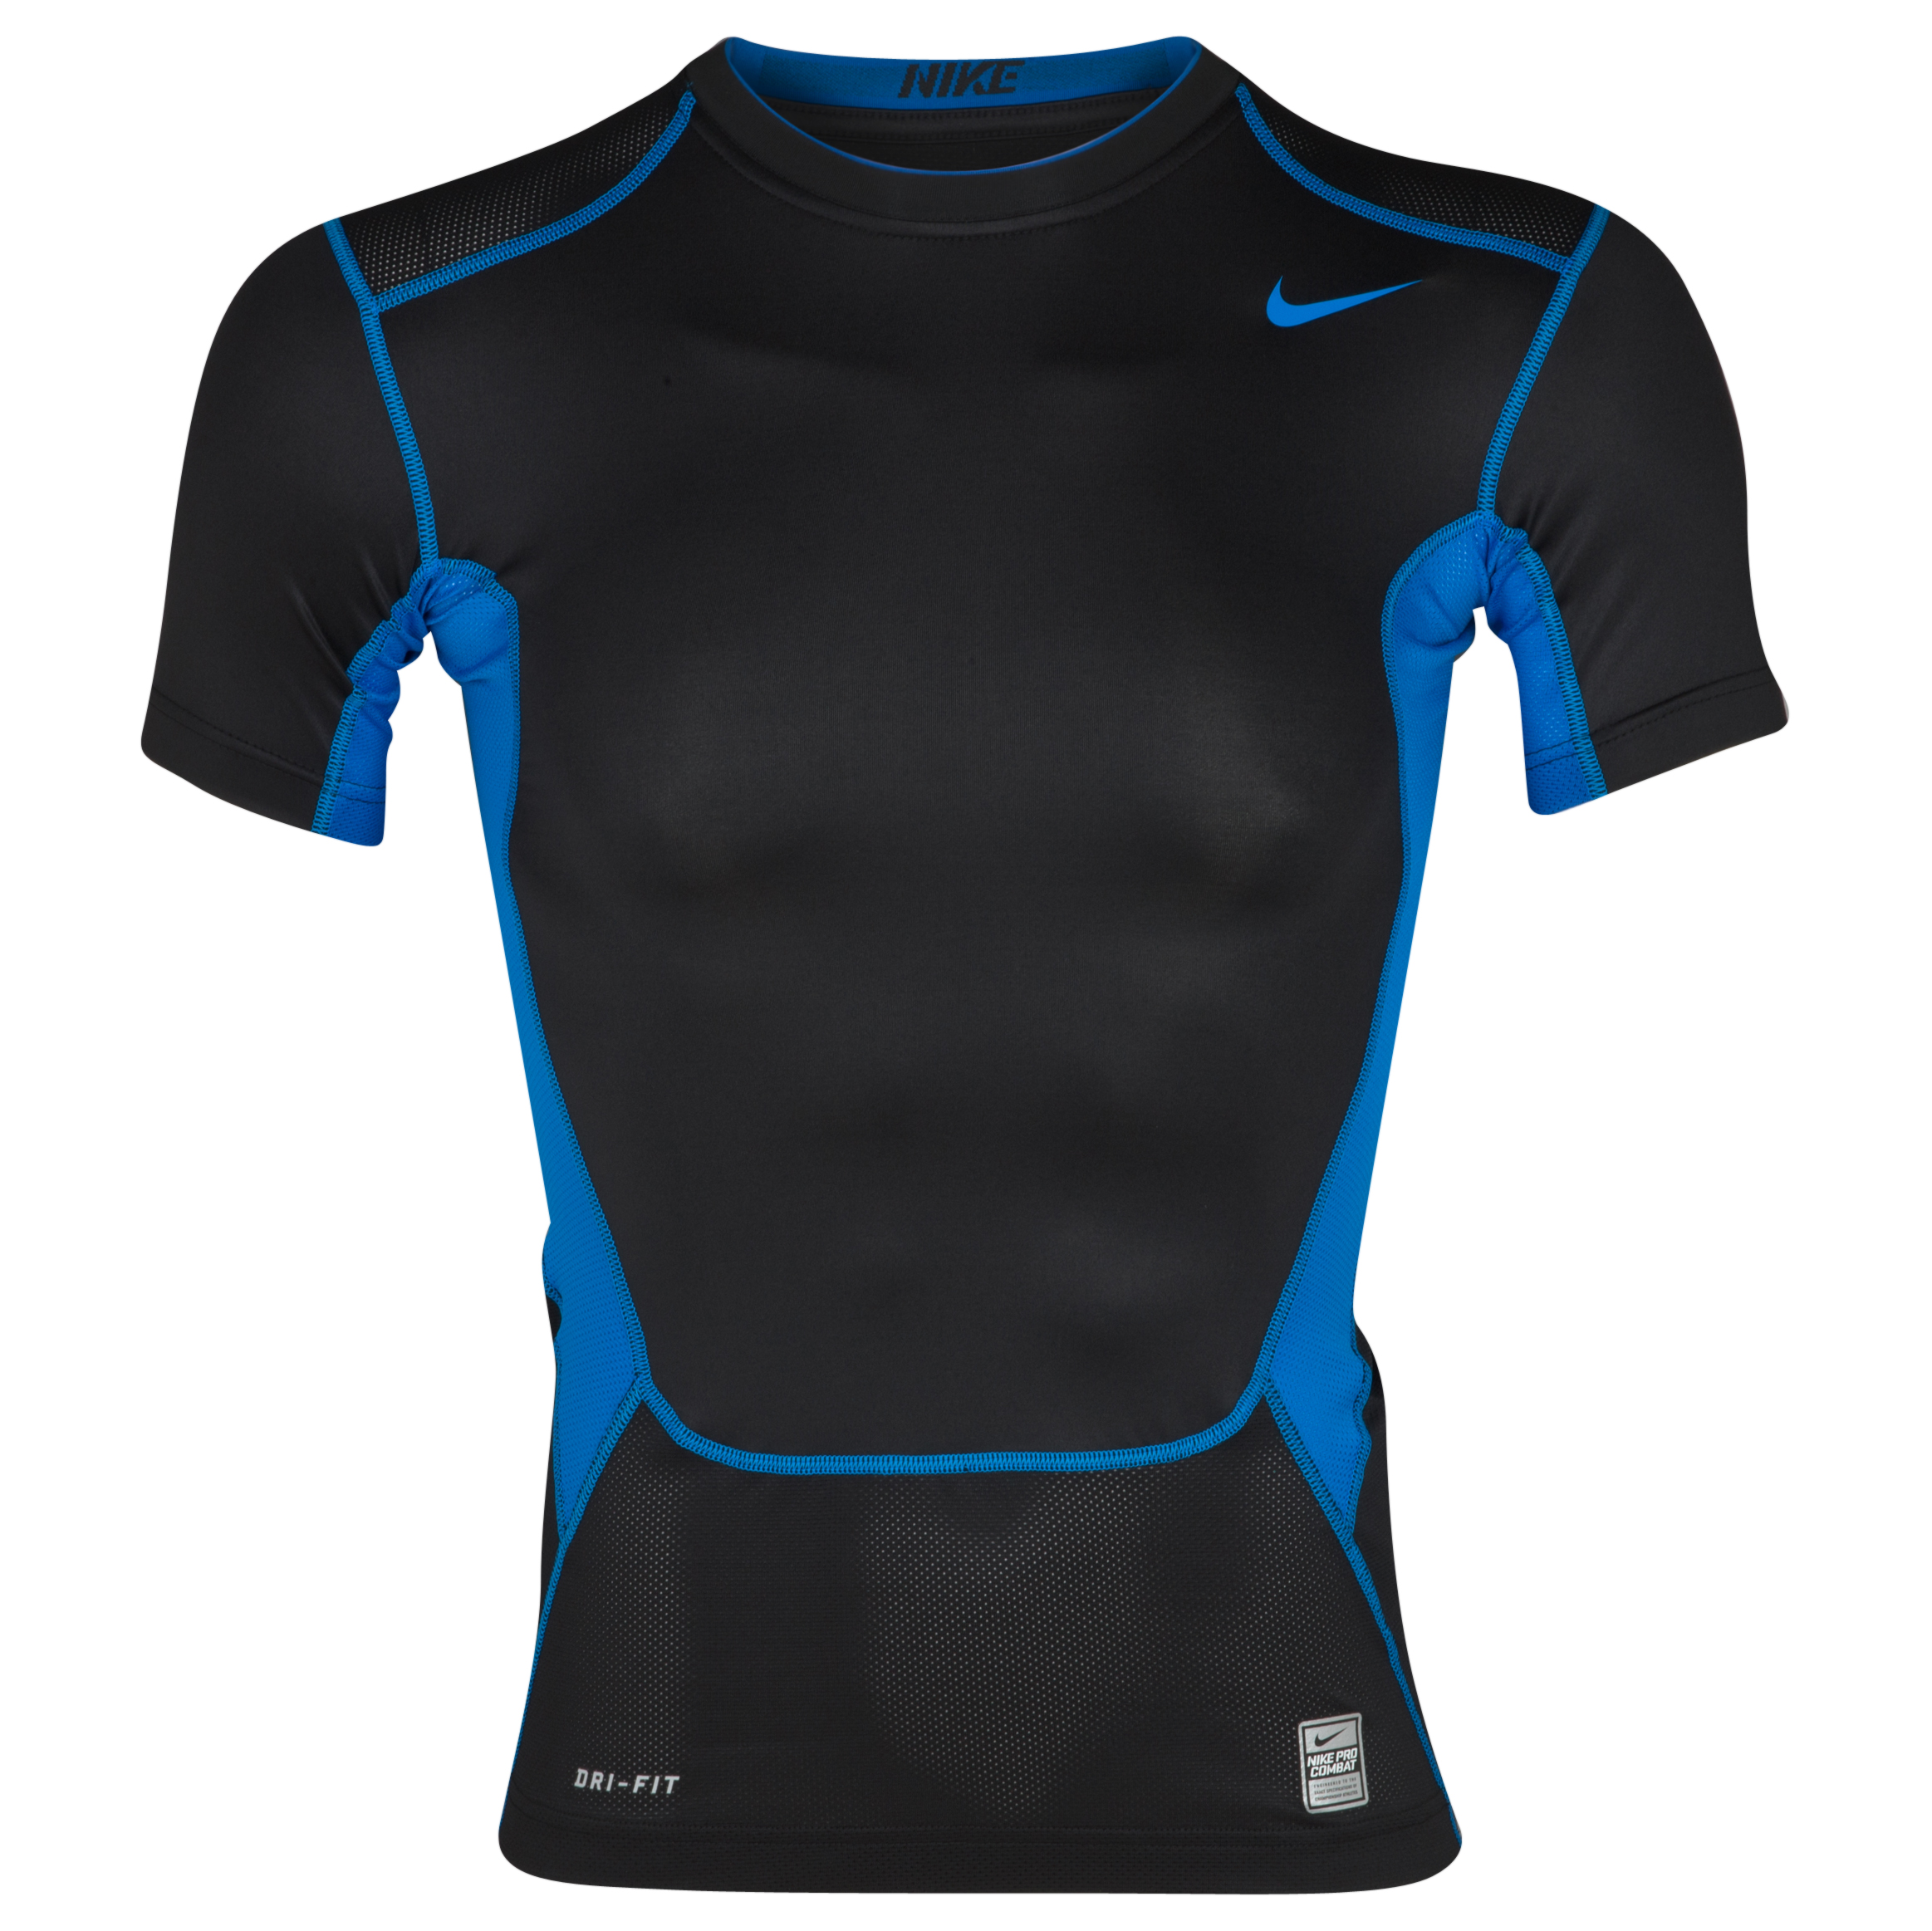 Nike Hypercool Comp Baselayer Top - Black/Photo Blue